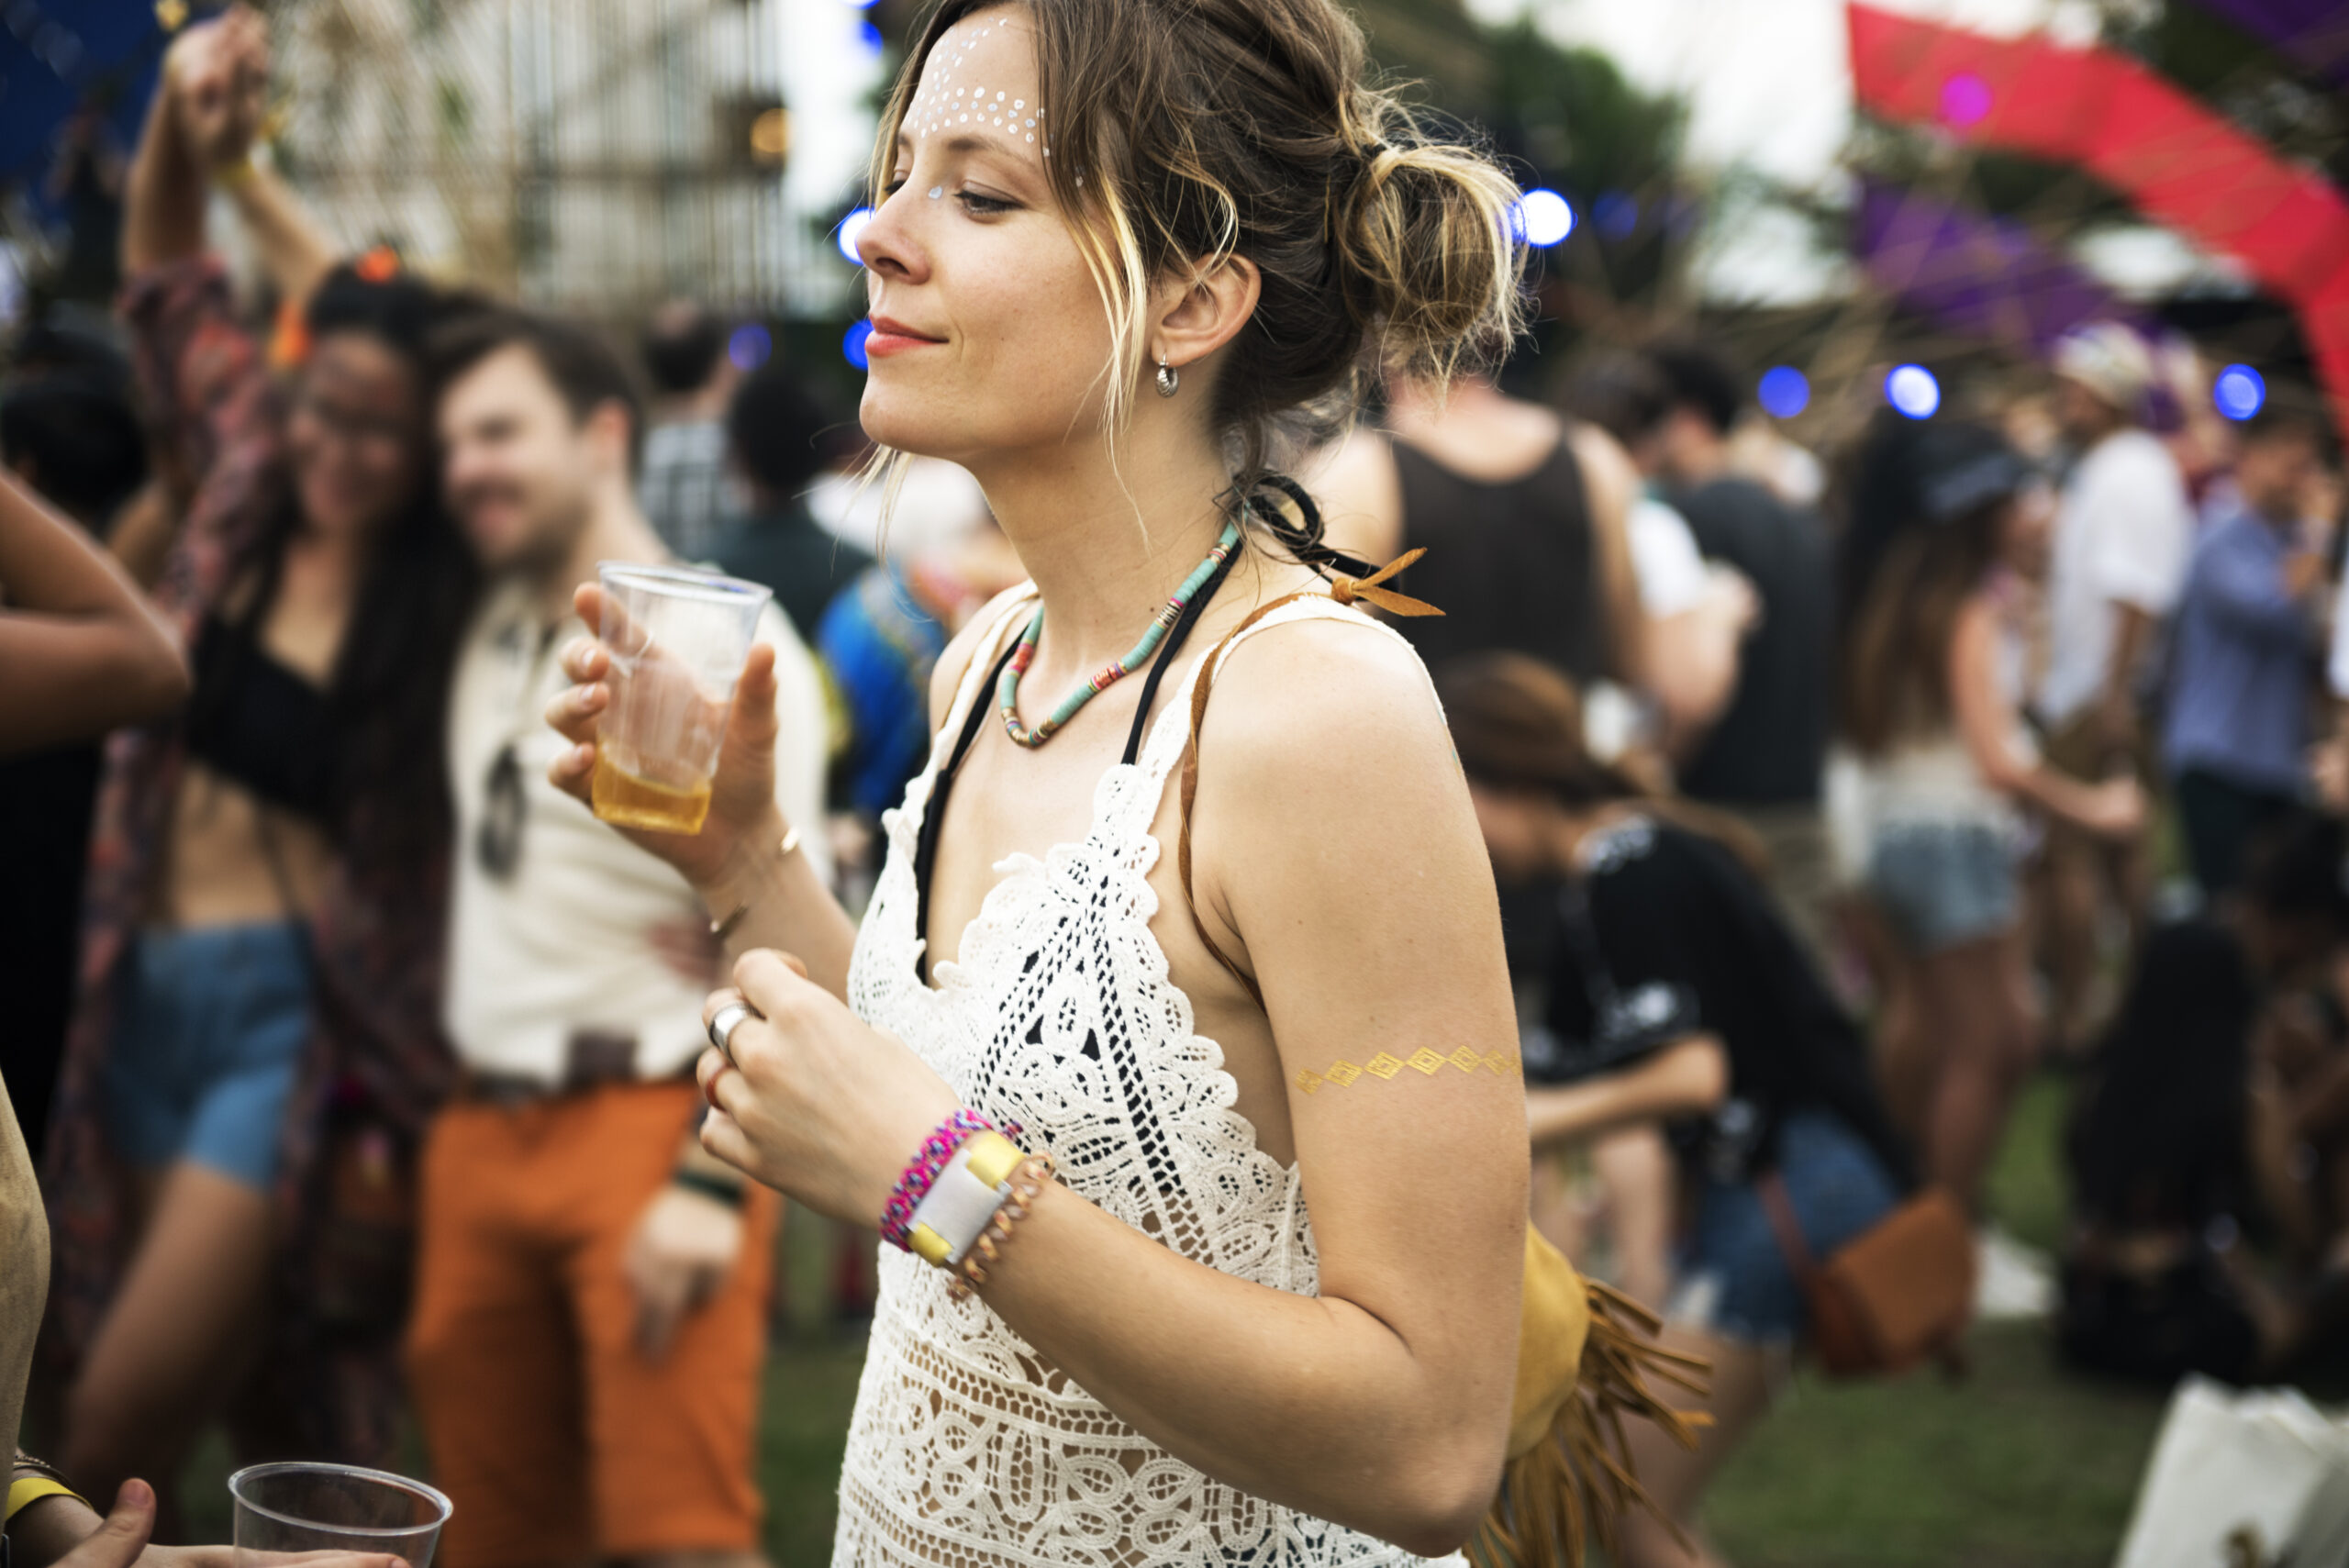 Woman with Beers Enjoying Music Festival